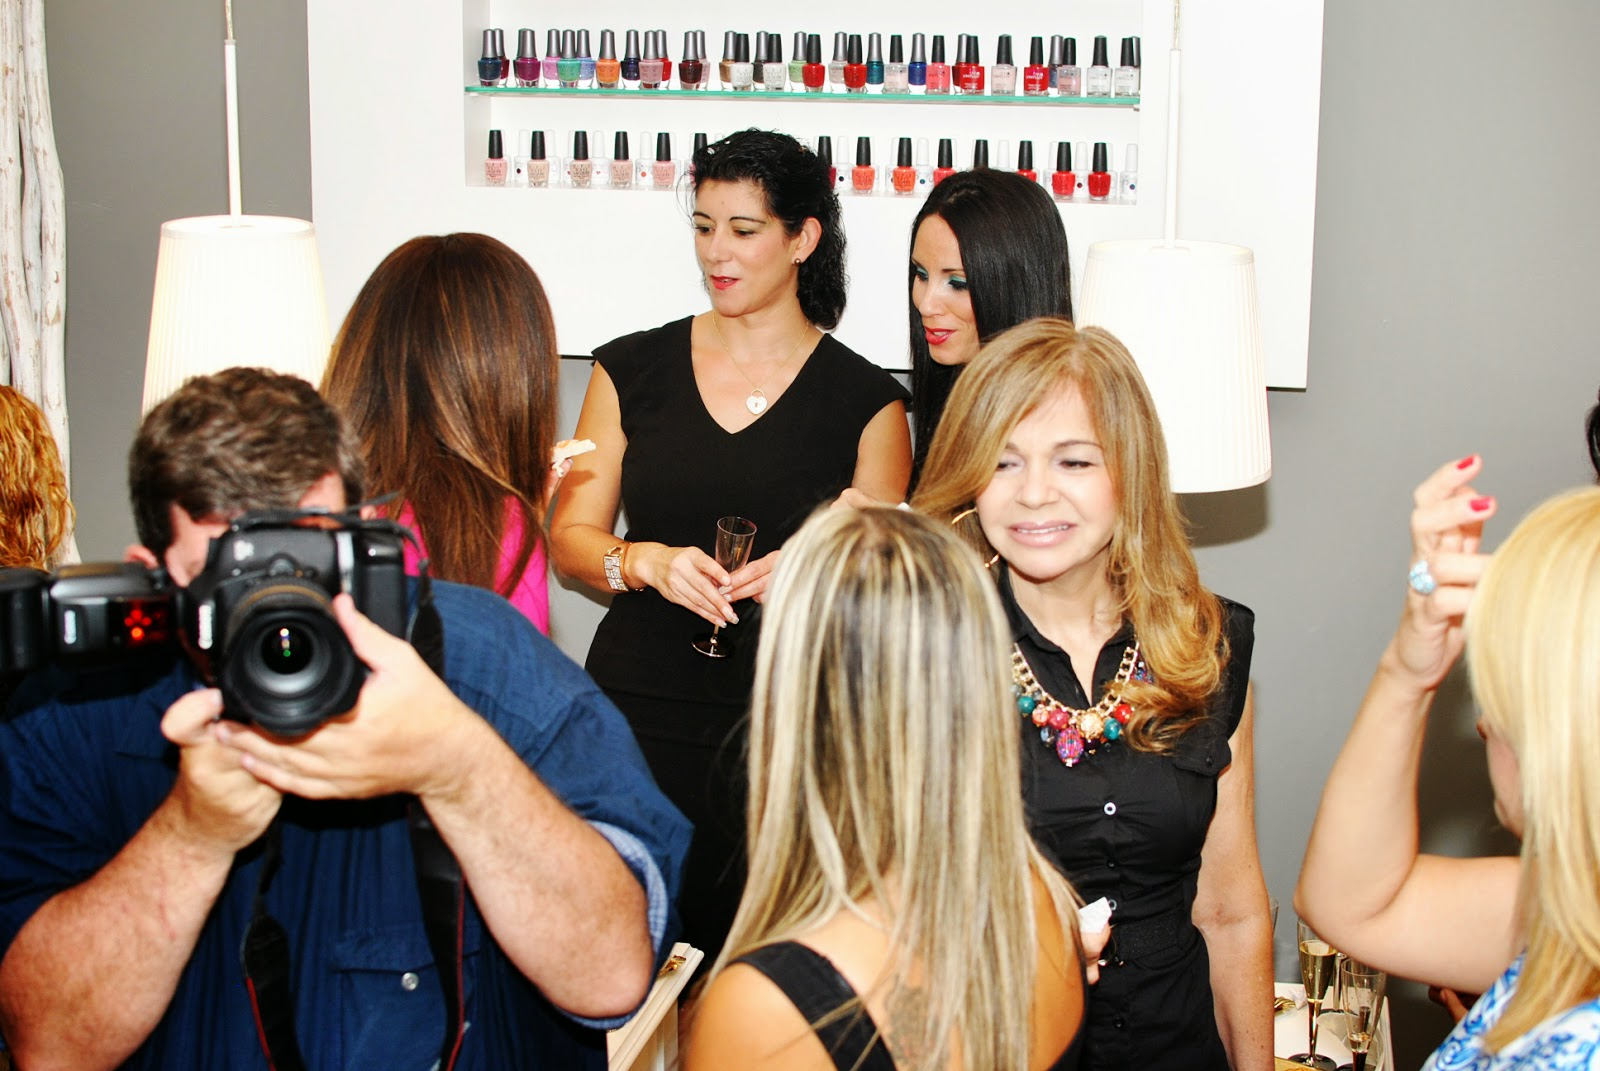 nery hdez, eventos de belleza en tenerife, nails, nails and beauty spa,